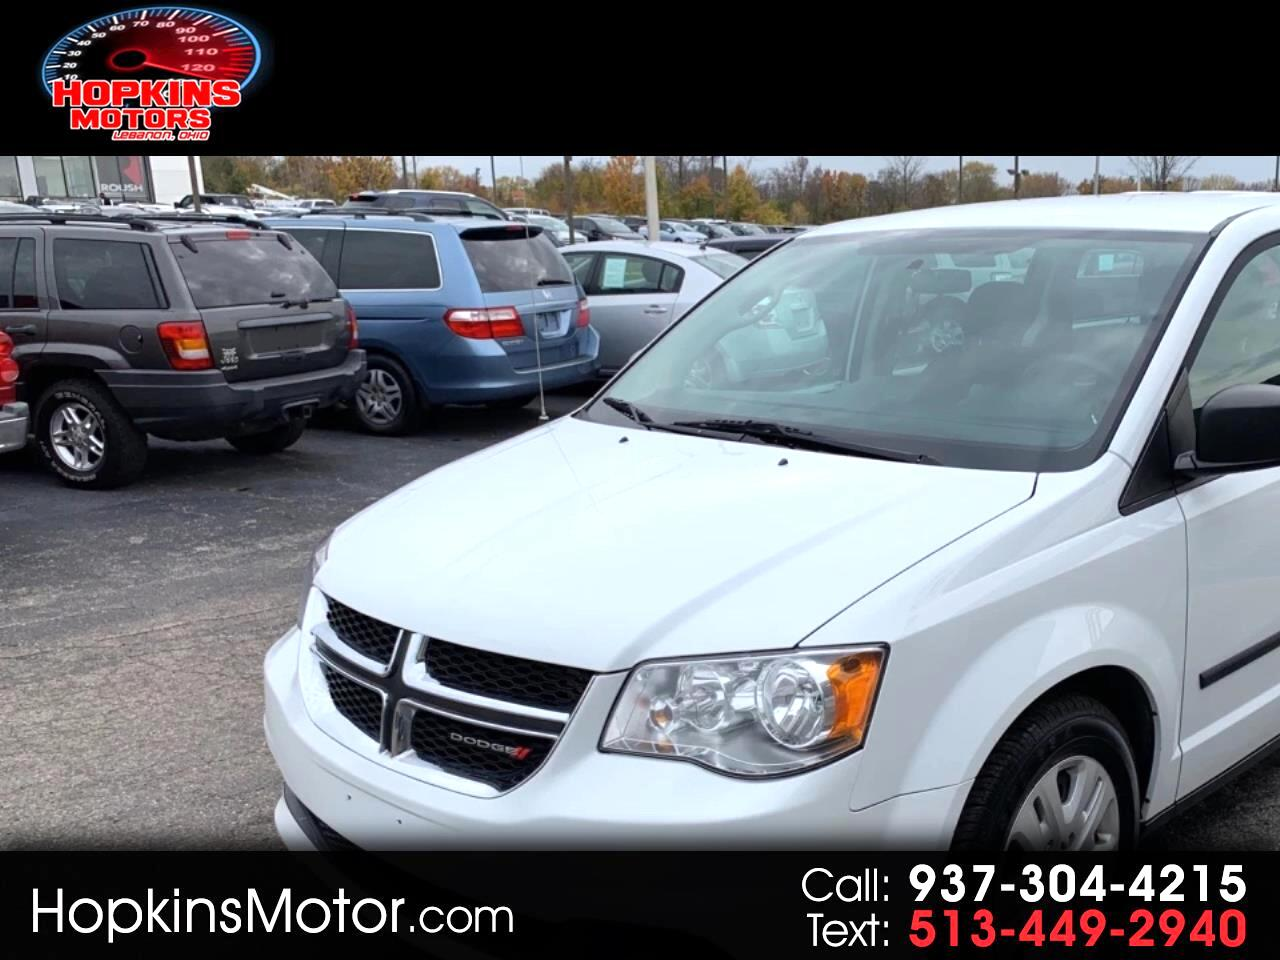 Used Cars For Sale Lebanon Oh 45036 Hopkins Motors Pt Cruiser Fuel Filter 2015 Dodge Grand Caravan 4dr Wgn American Value Pkg